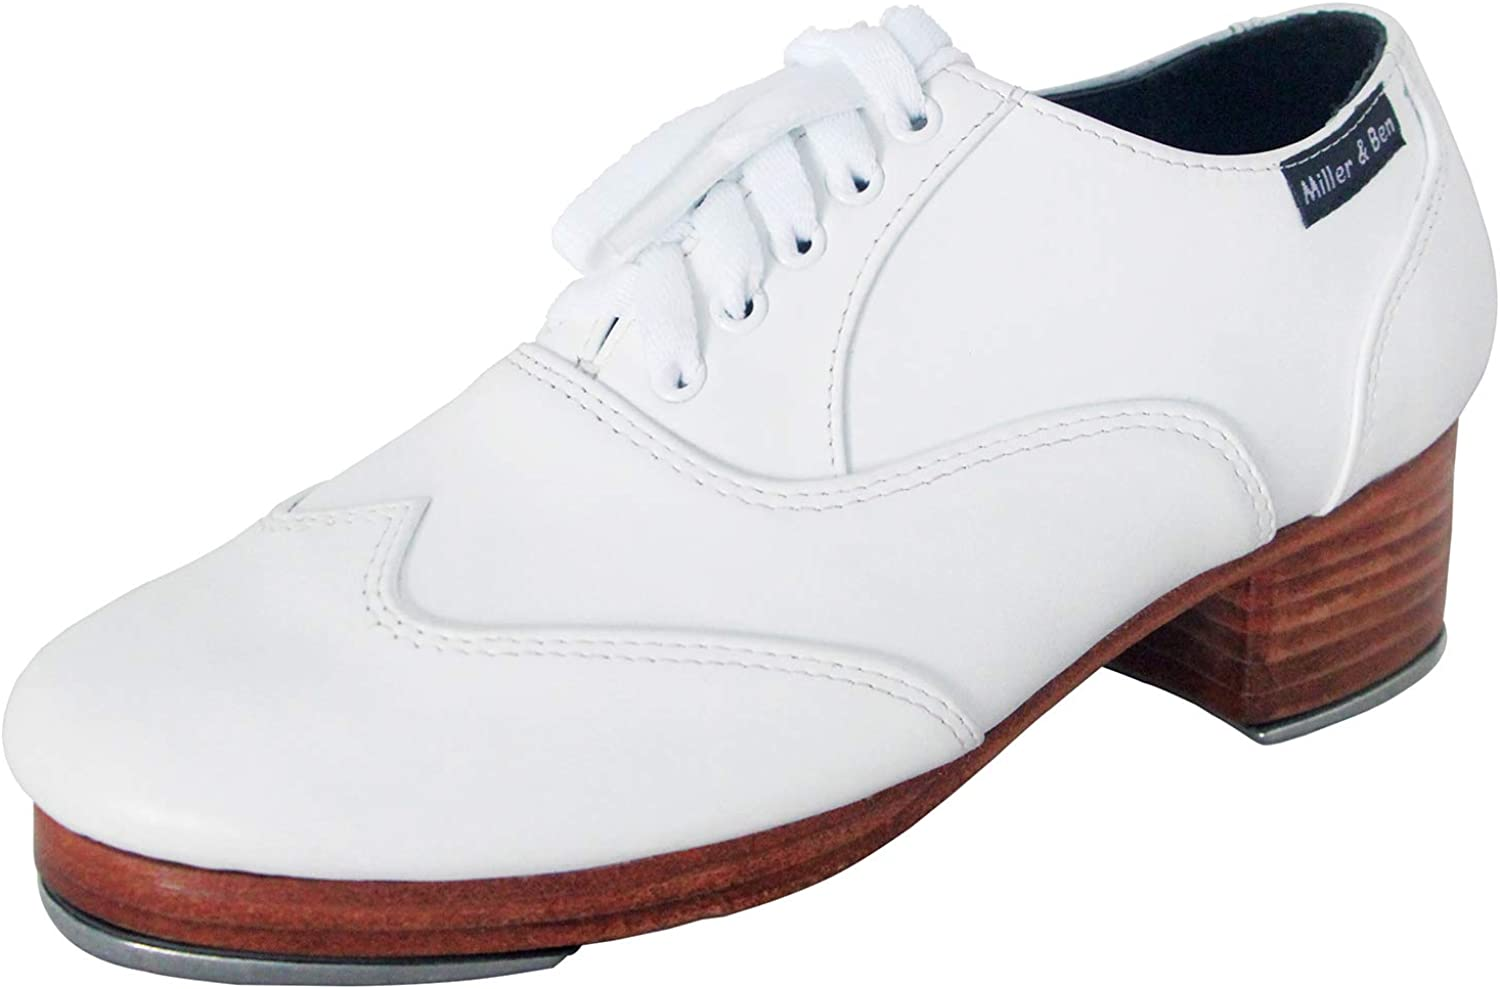 Miller & Ben Tap Shoes; Triple Threat; All White Professional Tap Shoes